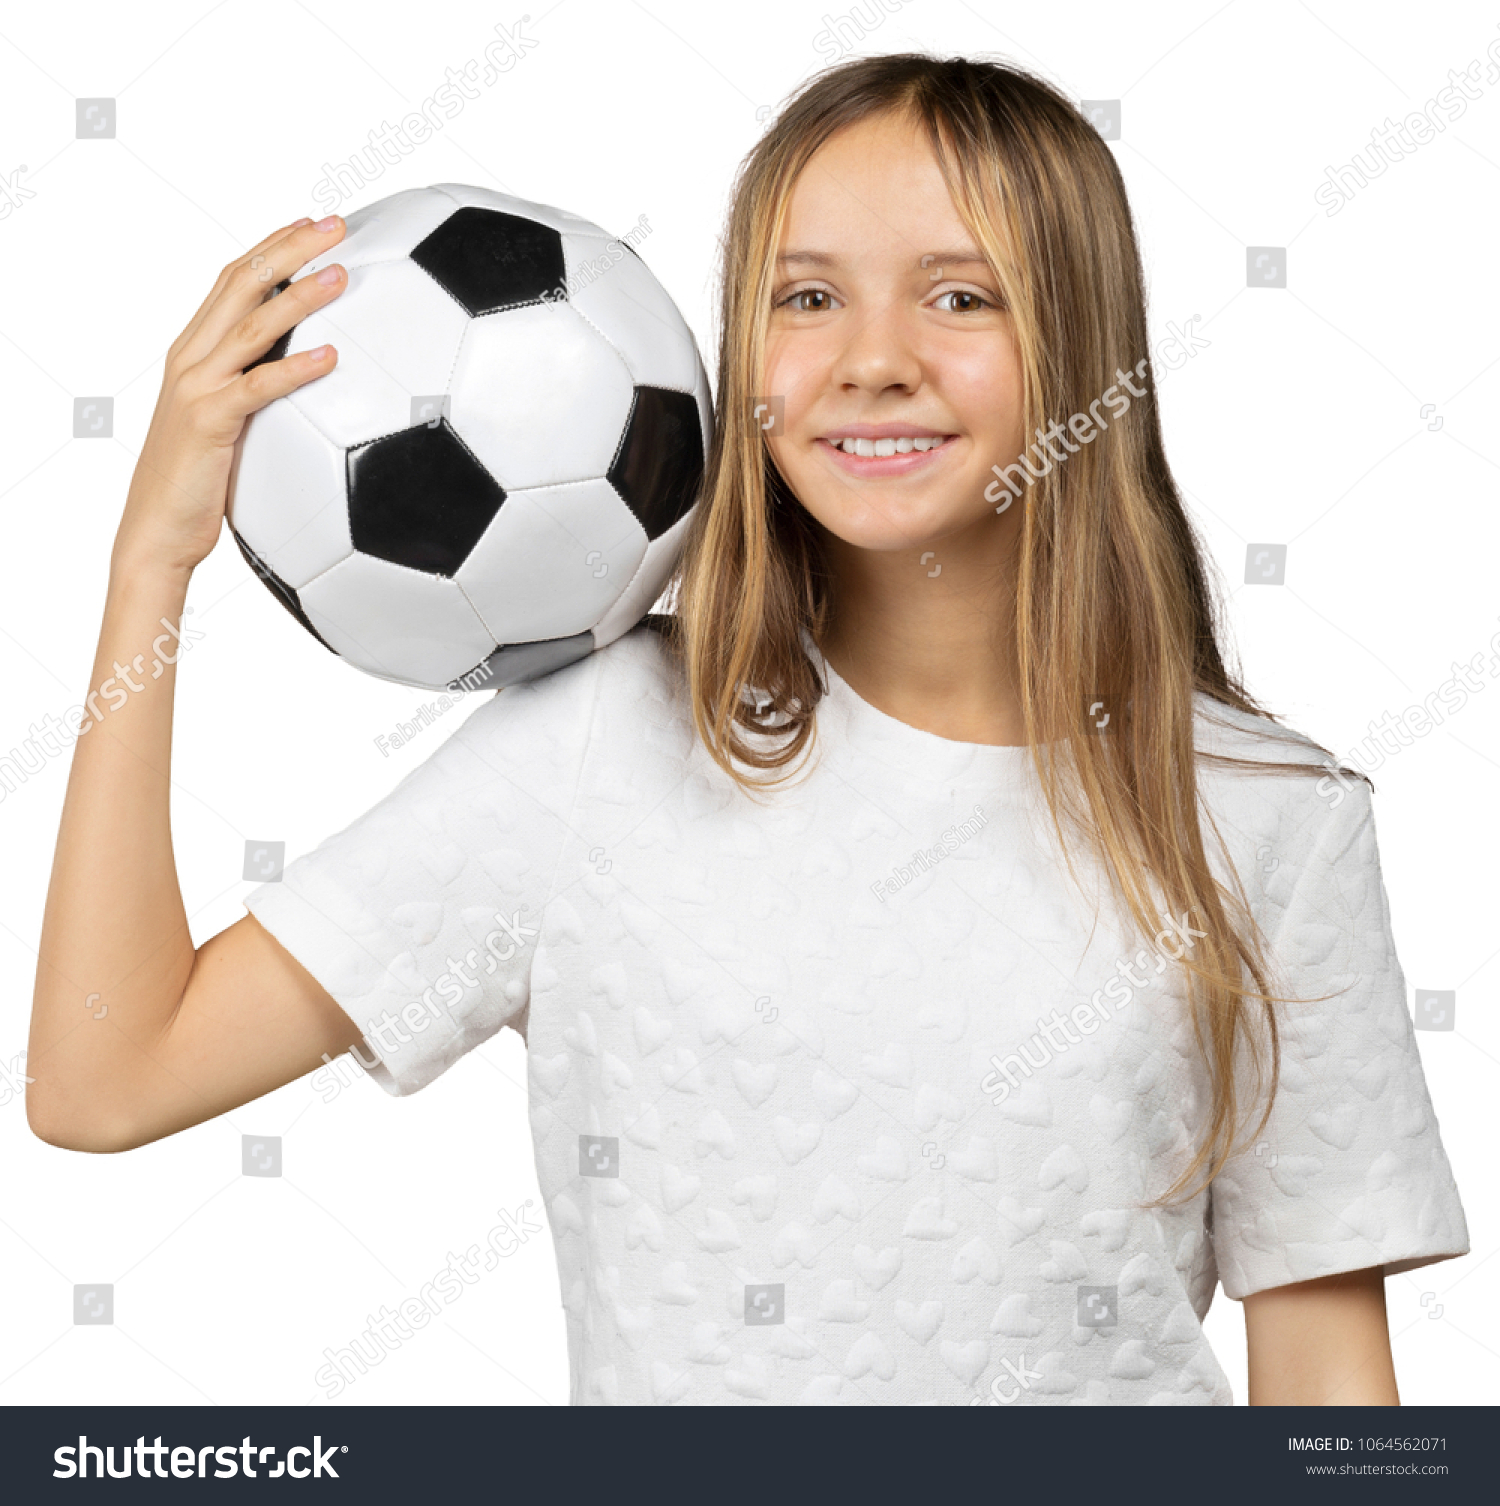 bb6b0555e little girl with a soccer ball isolated on a over white background